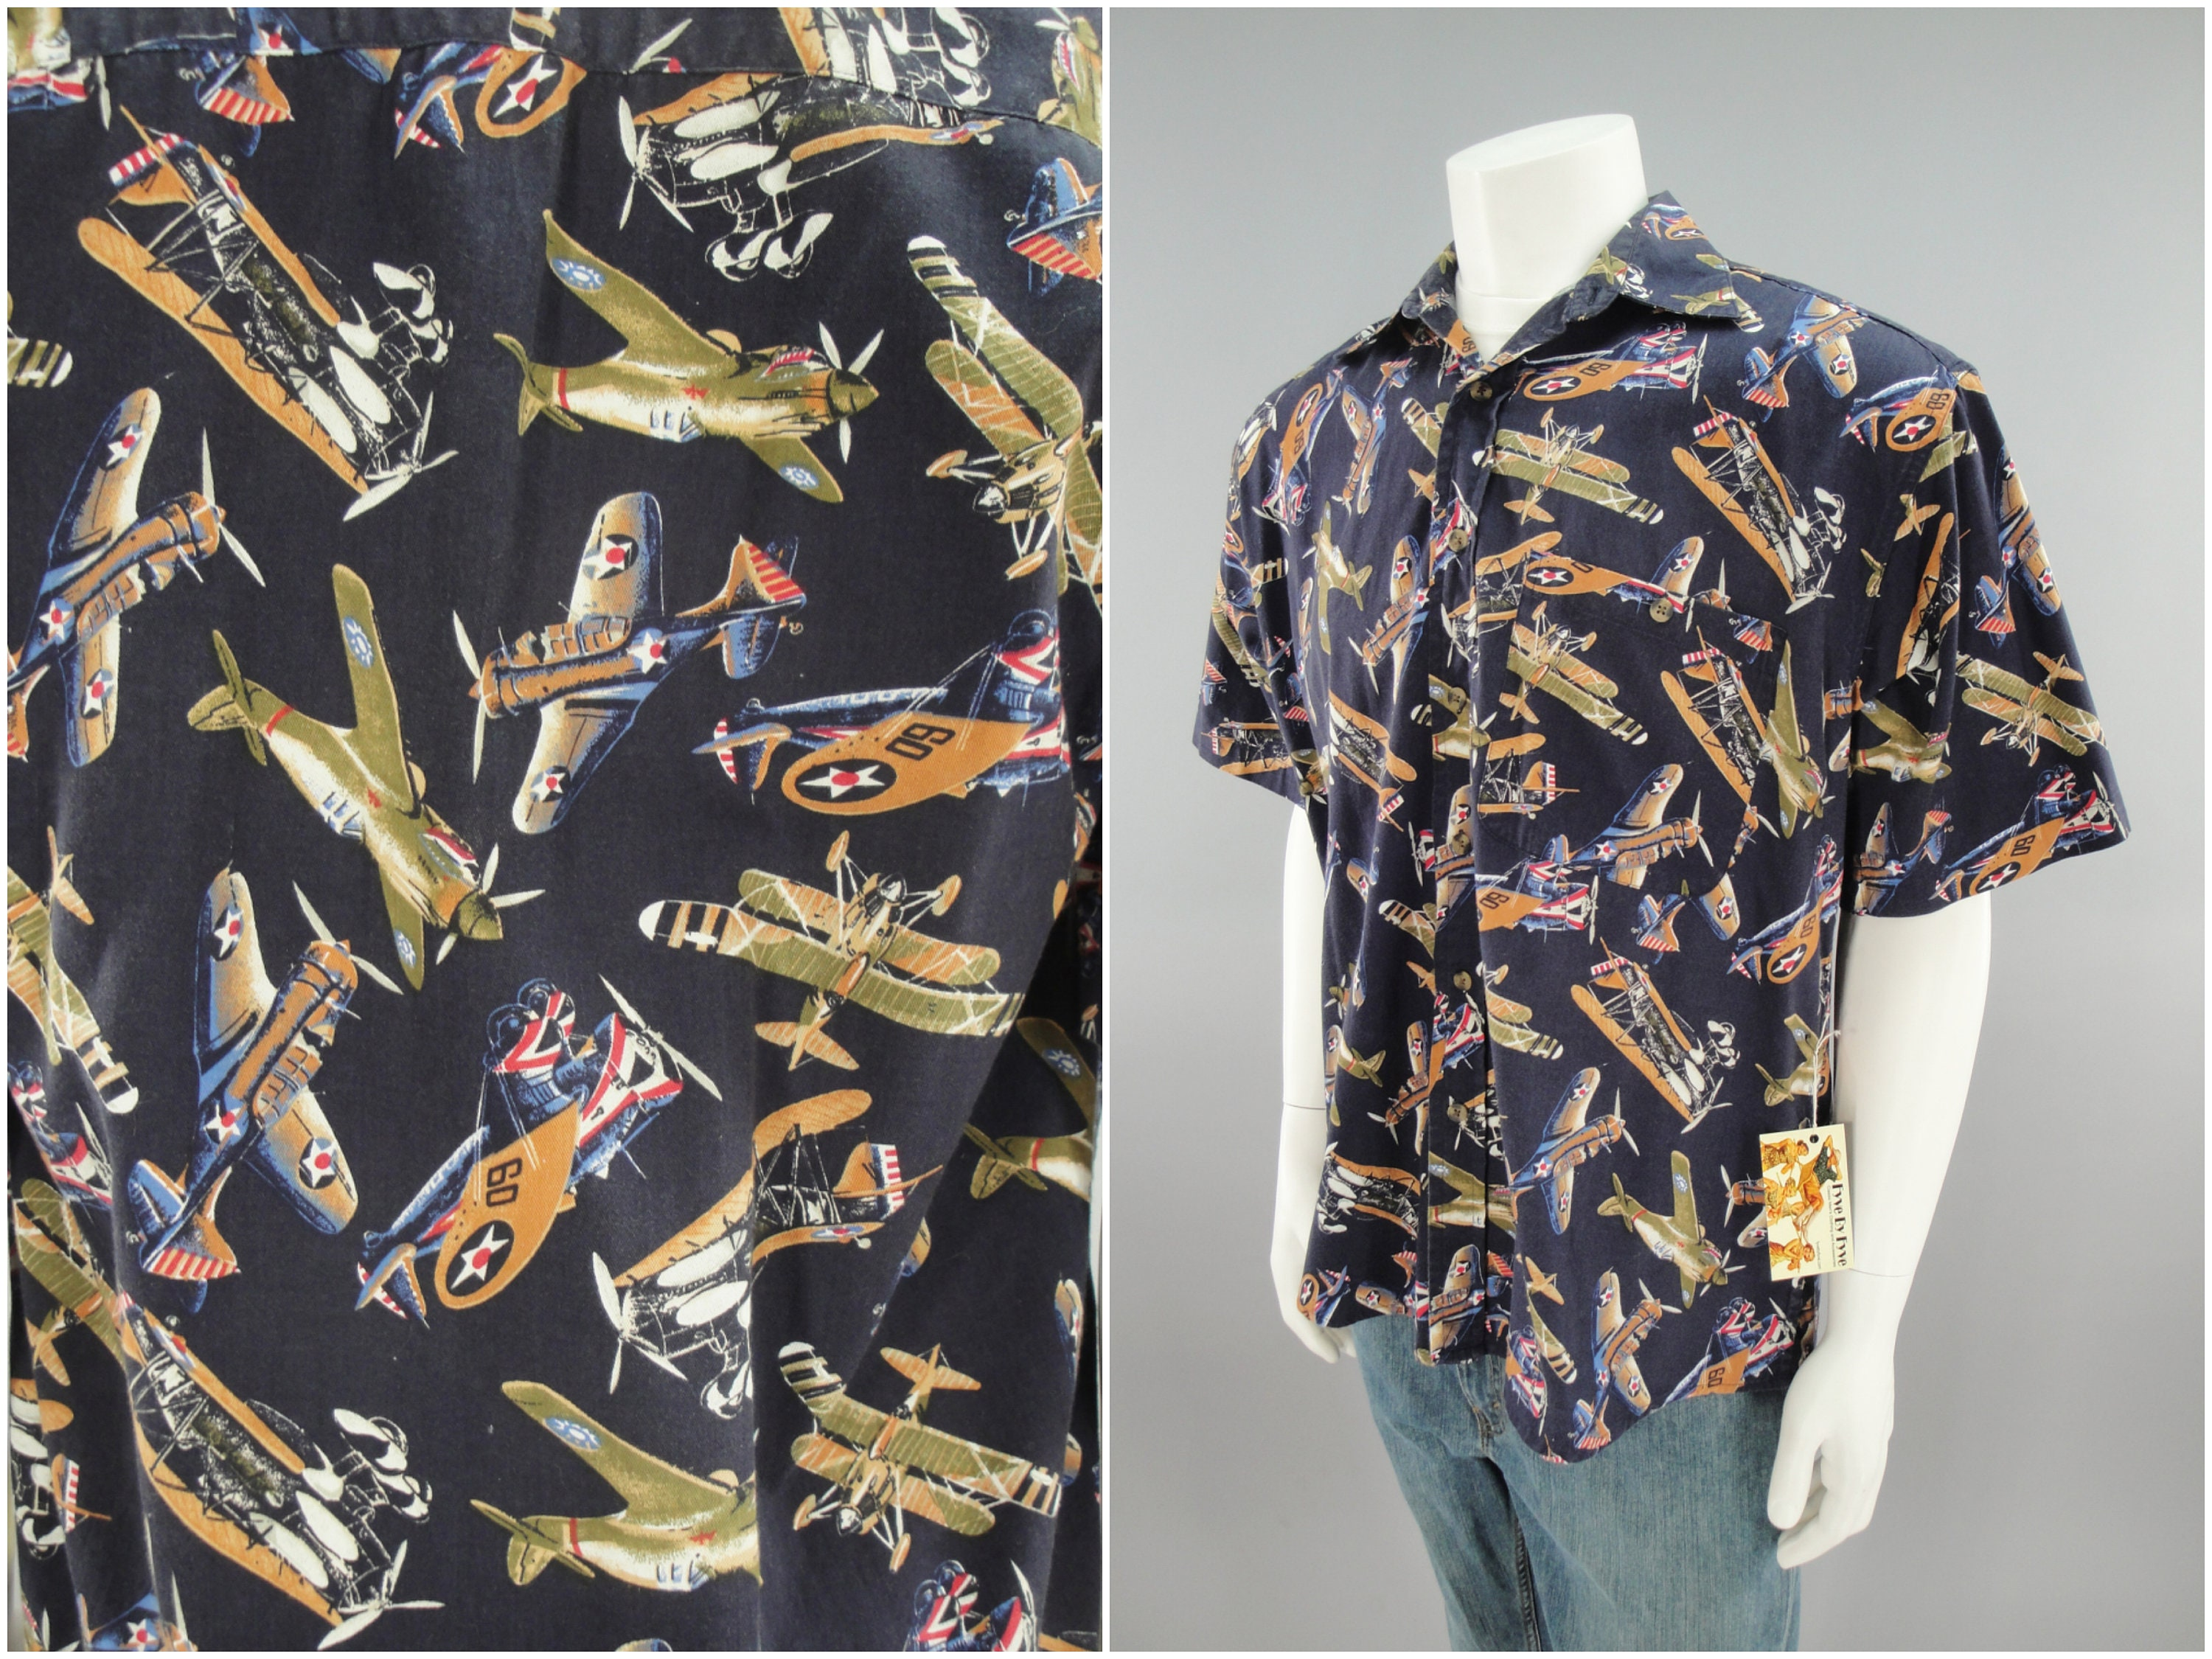 New 1930s Mens Fashion Ties Smithsonian Ww2 Vintage Warbirds Hawaiian Style Shirt, Mens Size Xl 46, Classic 1930S - 1940S Aviation Theme Aircraft Casual Lounge Shirt $0.00 AT vintagedancer.com